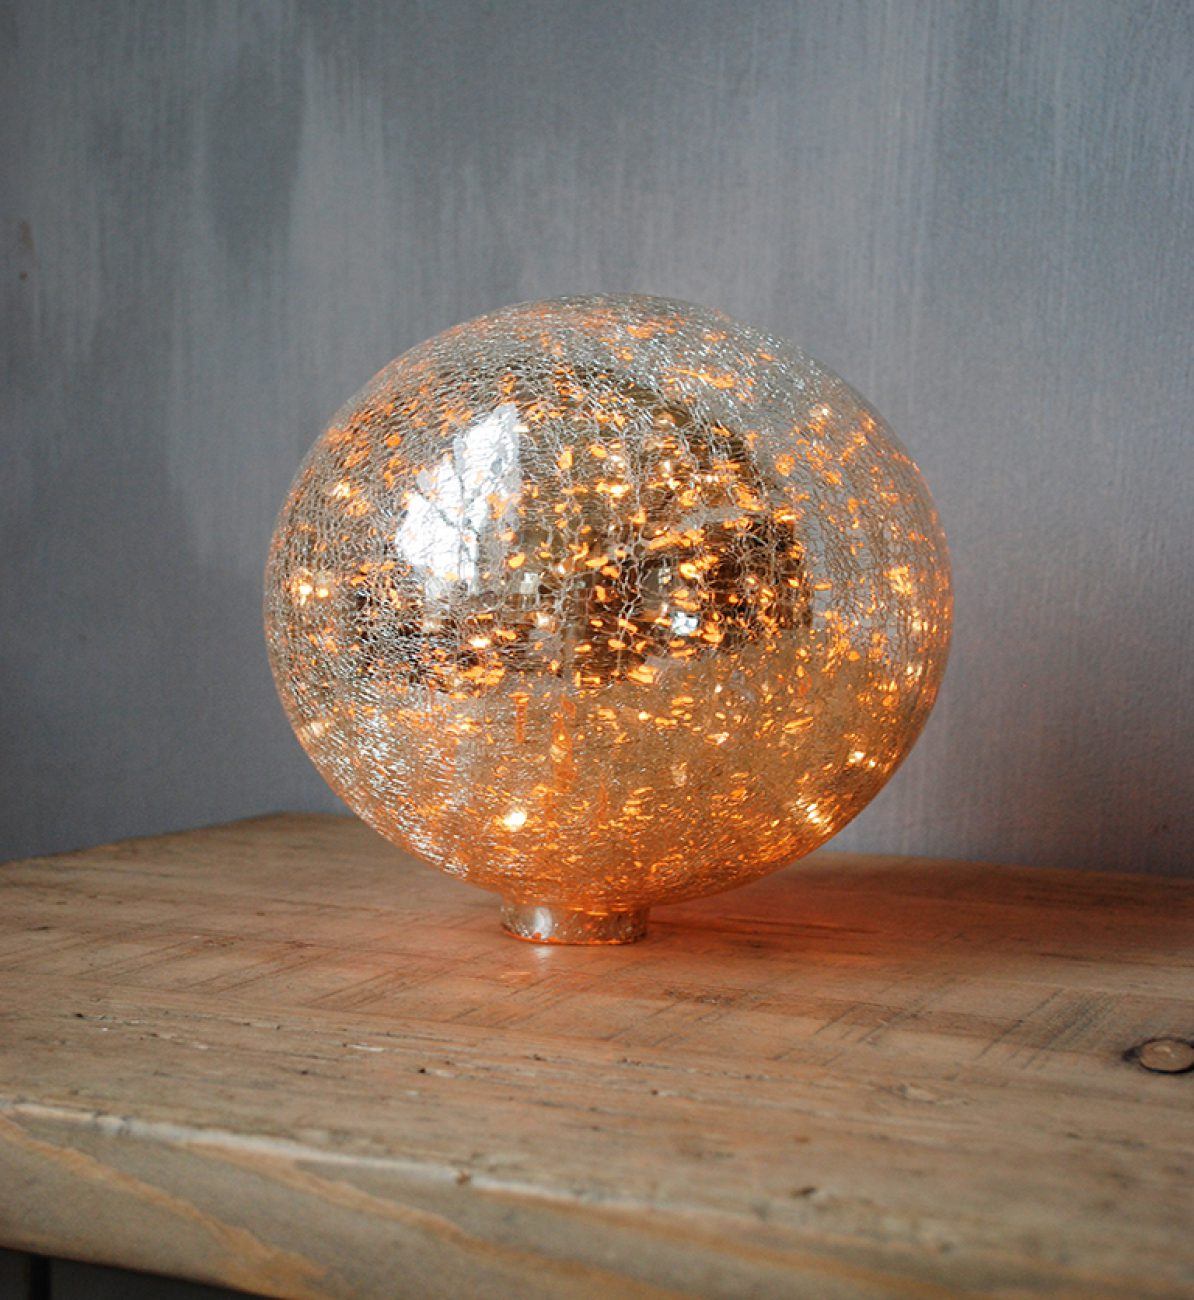 Lampe Ball Table Lamp Ball 20cm Crackle Silver Glass 9554 Chehoma